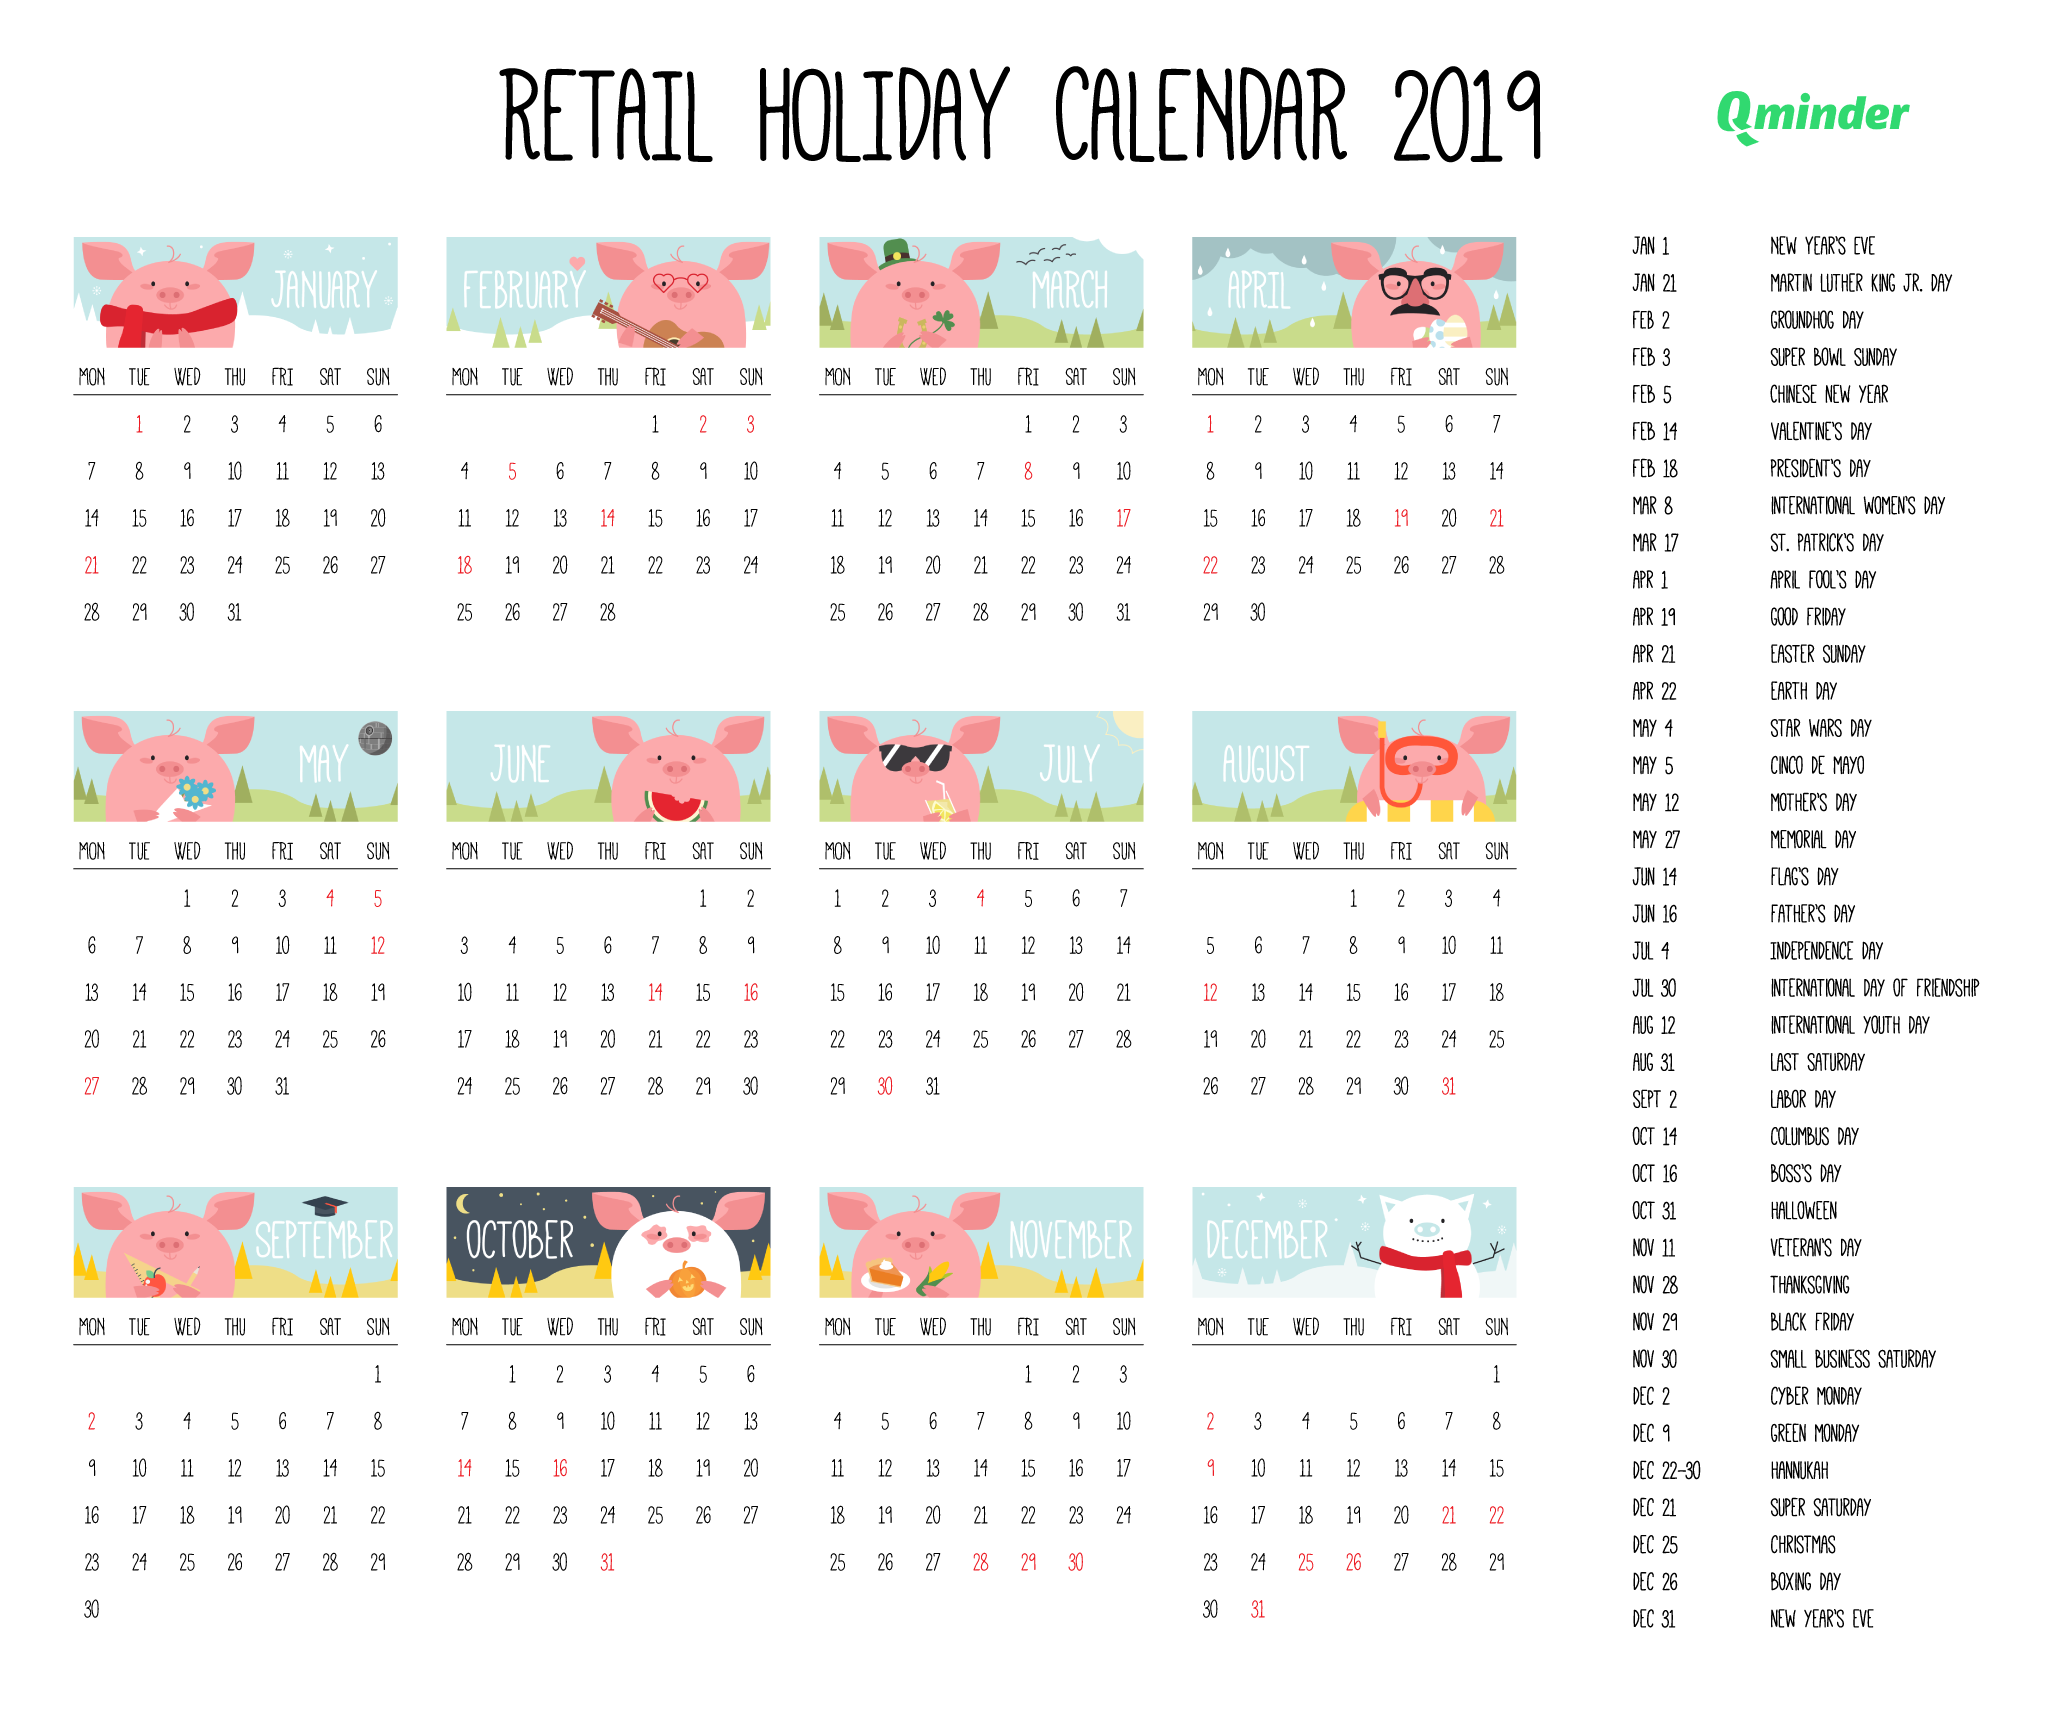 2019 Retail Holiday Calendar Qminder